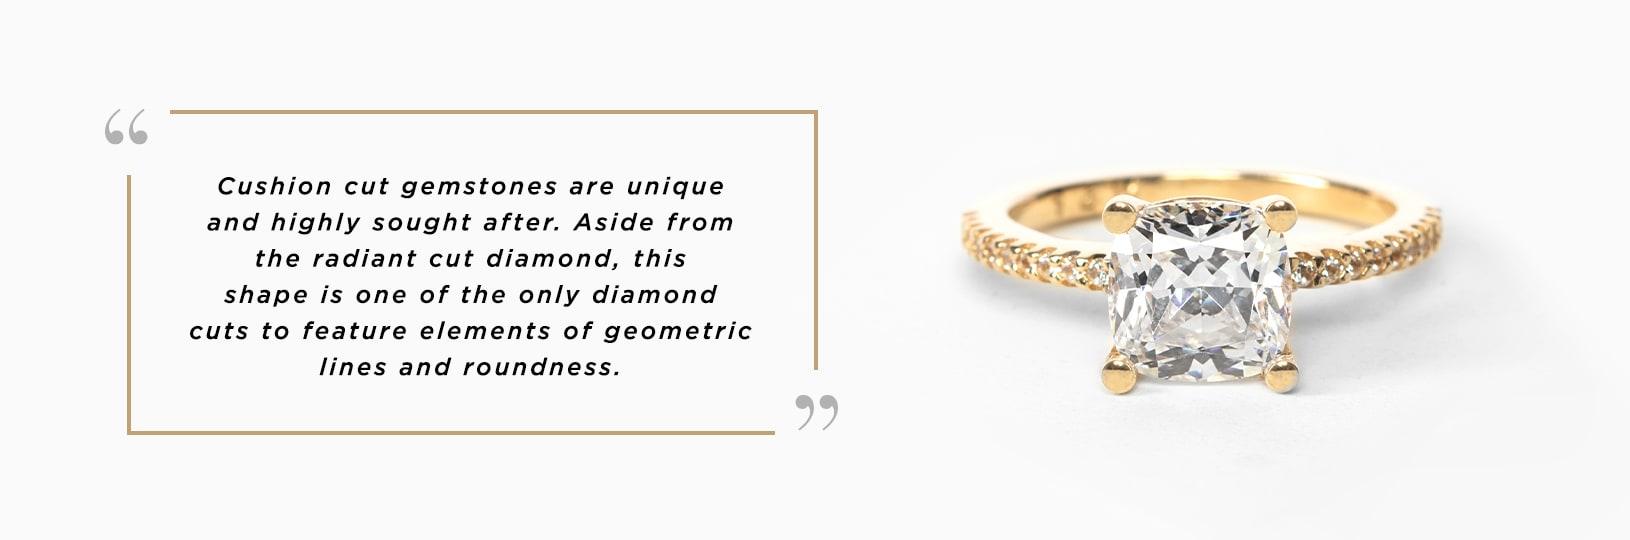 Cushion cut stones feature elements of geometric lines and roundness